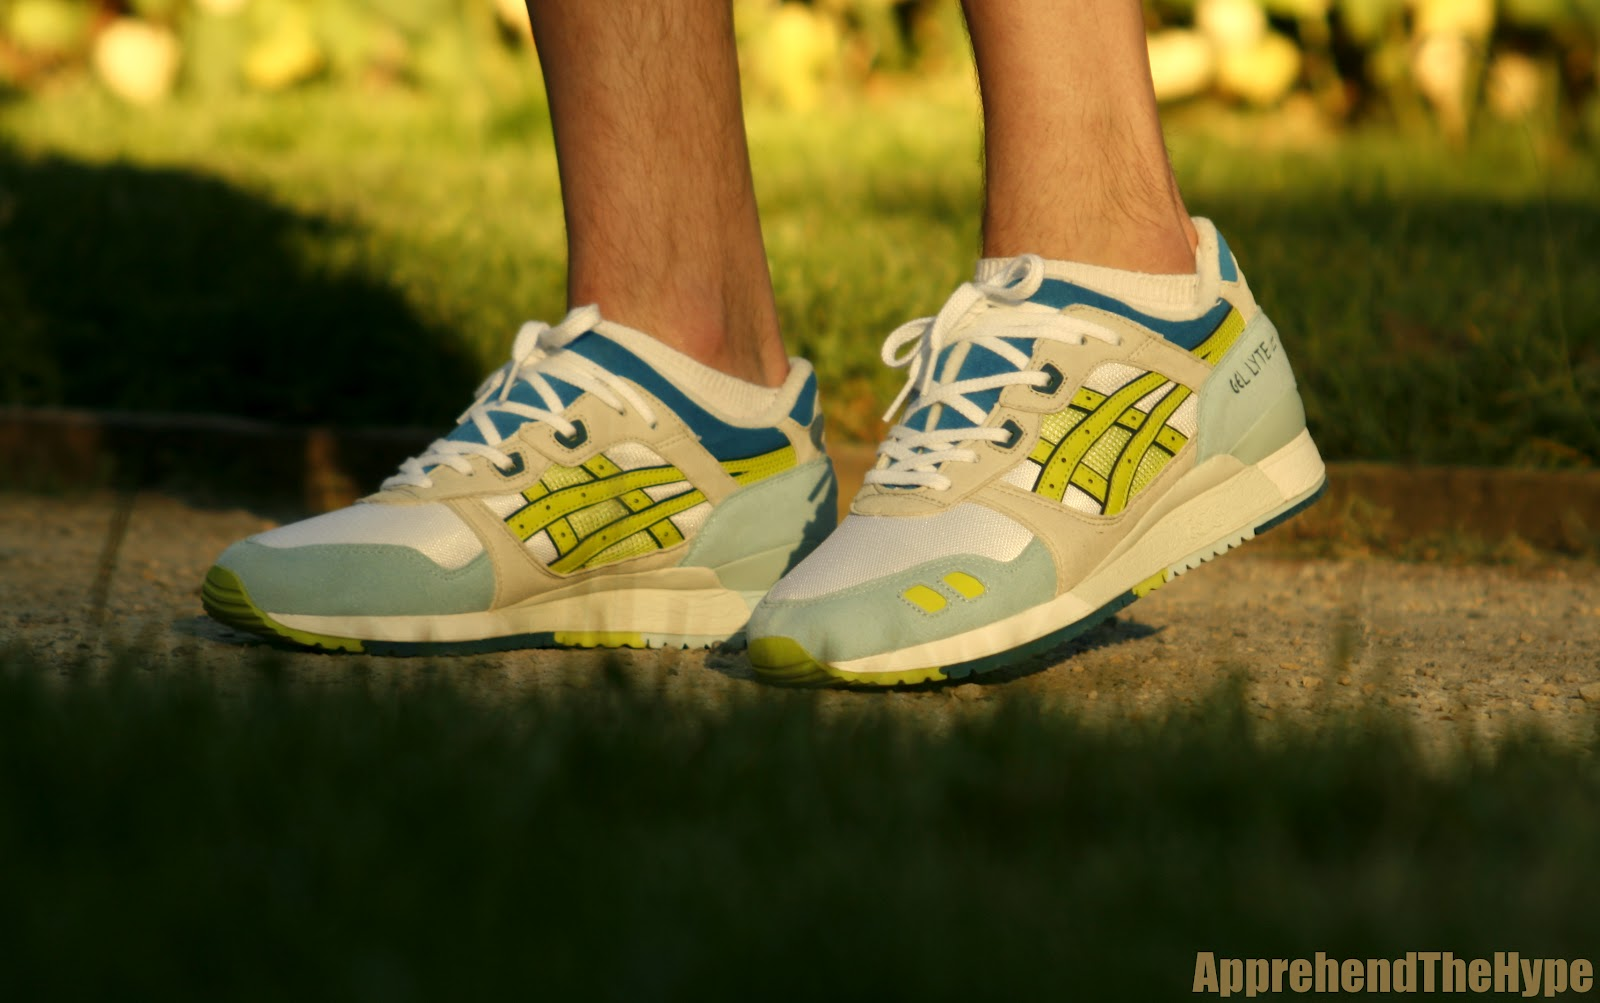 timeless design fa880 0b0f8 apprehend the hype: Asics Gel Lyte iii - White / Lime / Blue